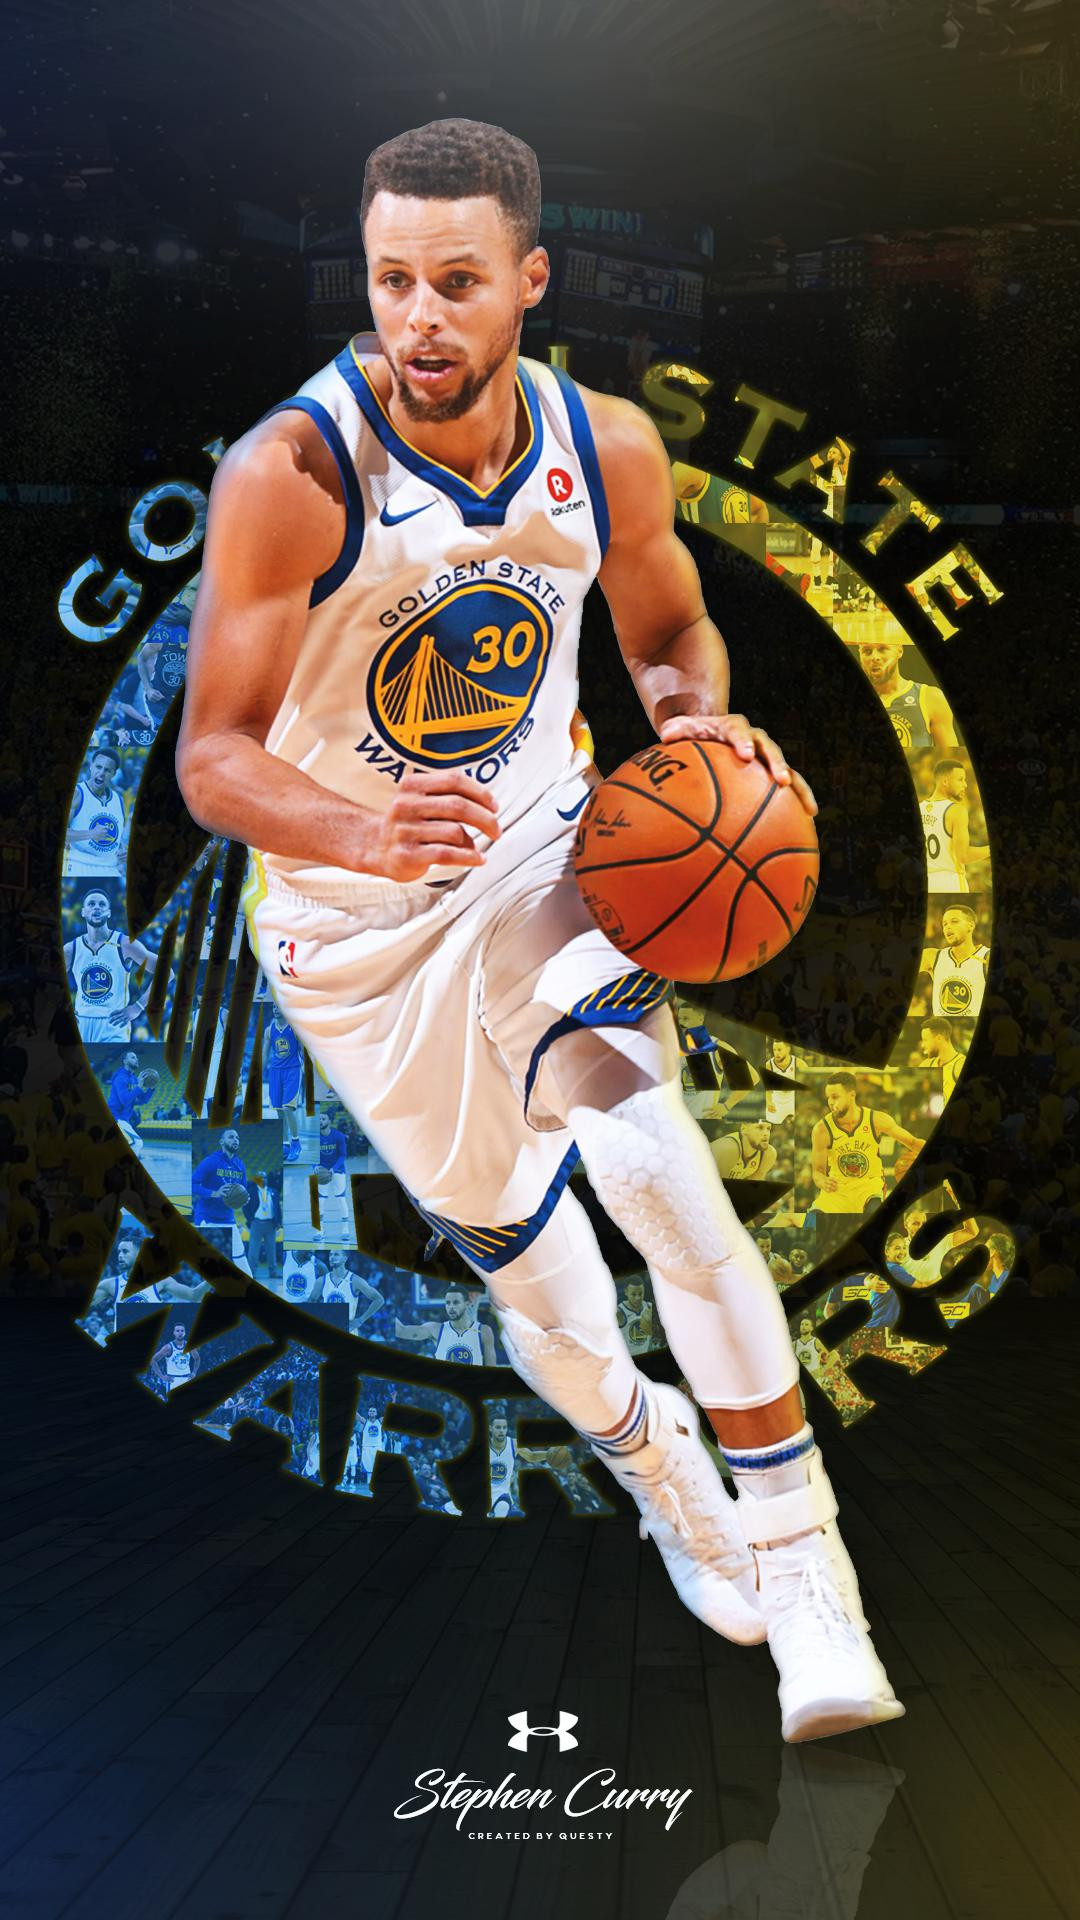 Stephen Curry Wallpaper Iphone   KoLPaPer   Awesome HD Wallpapers 1080x1920